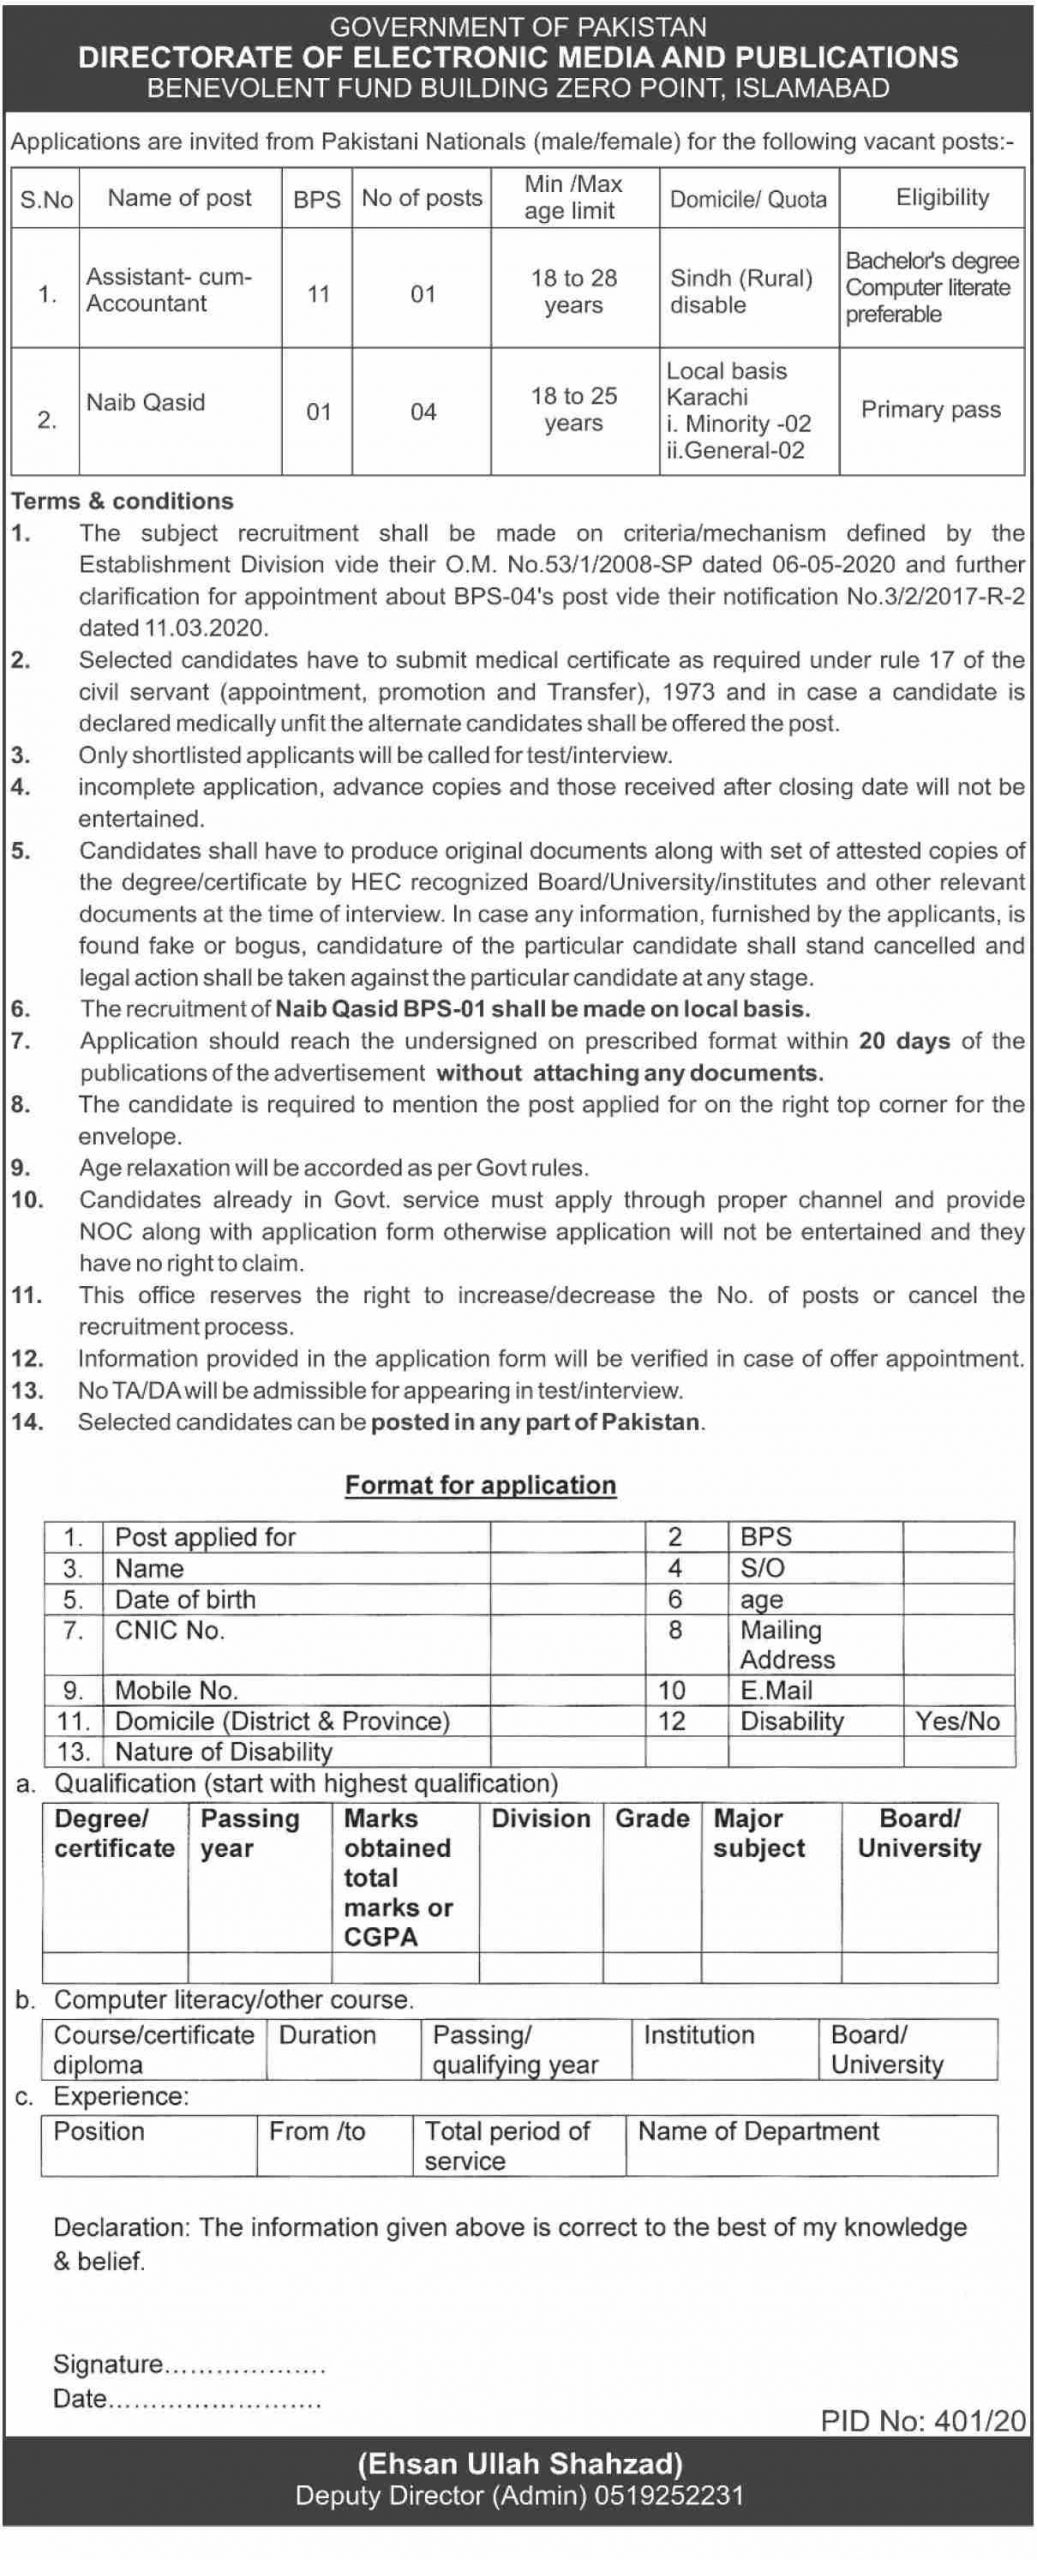 Government of Pakistan Directorate of Electronic Media and Publications Jobs July 2020